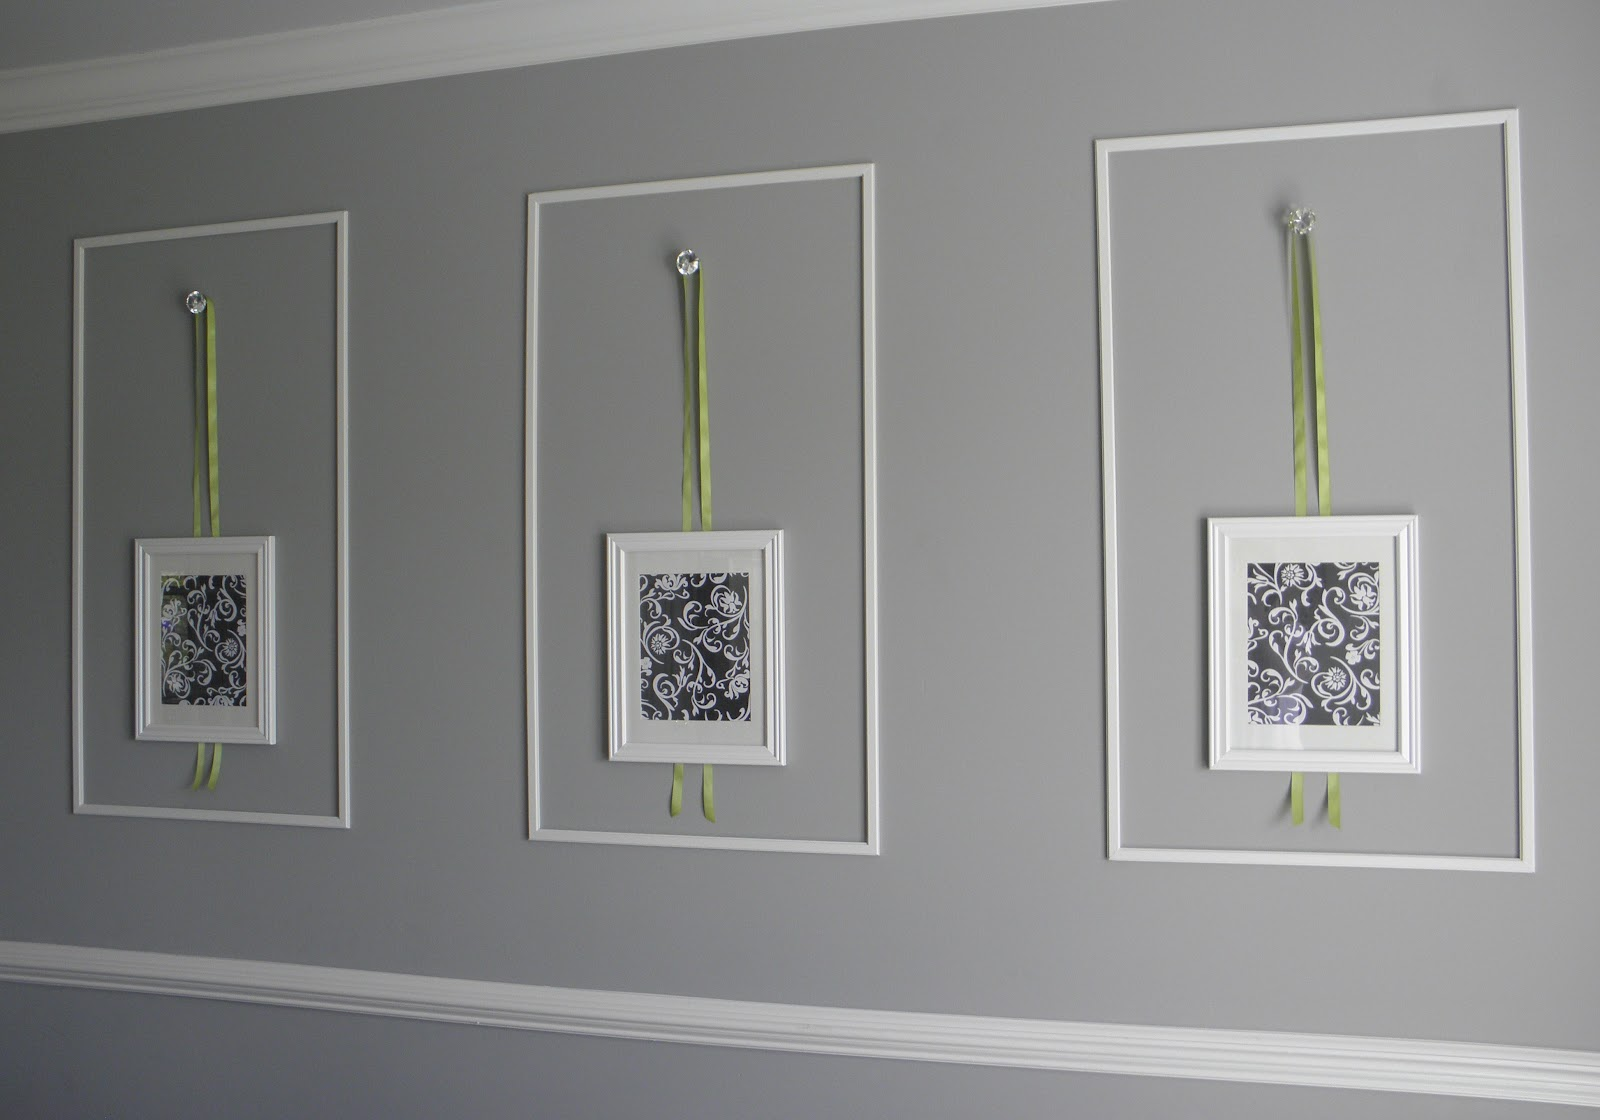 i purchased unfinished trim pieces and cut them to make large wall frames each piece was